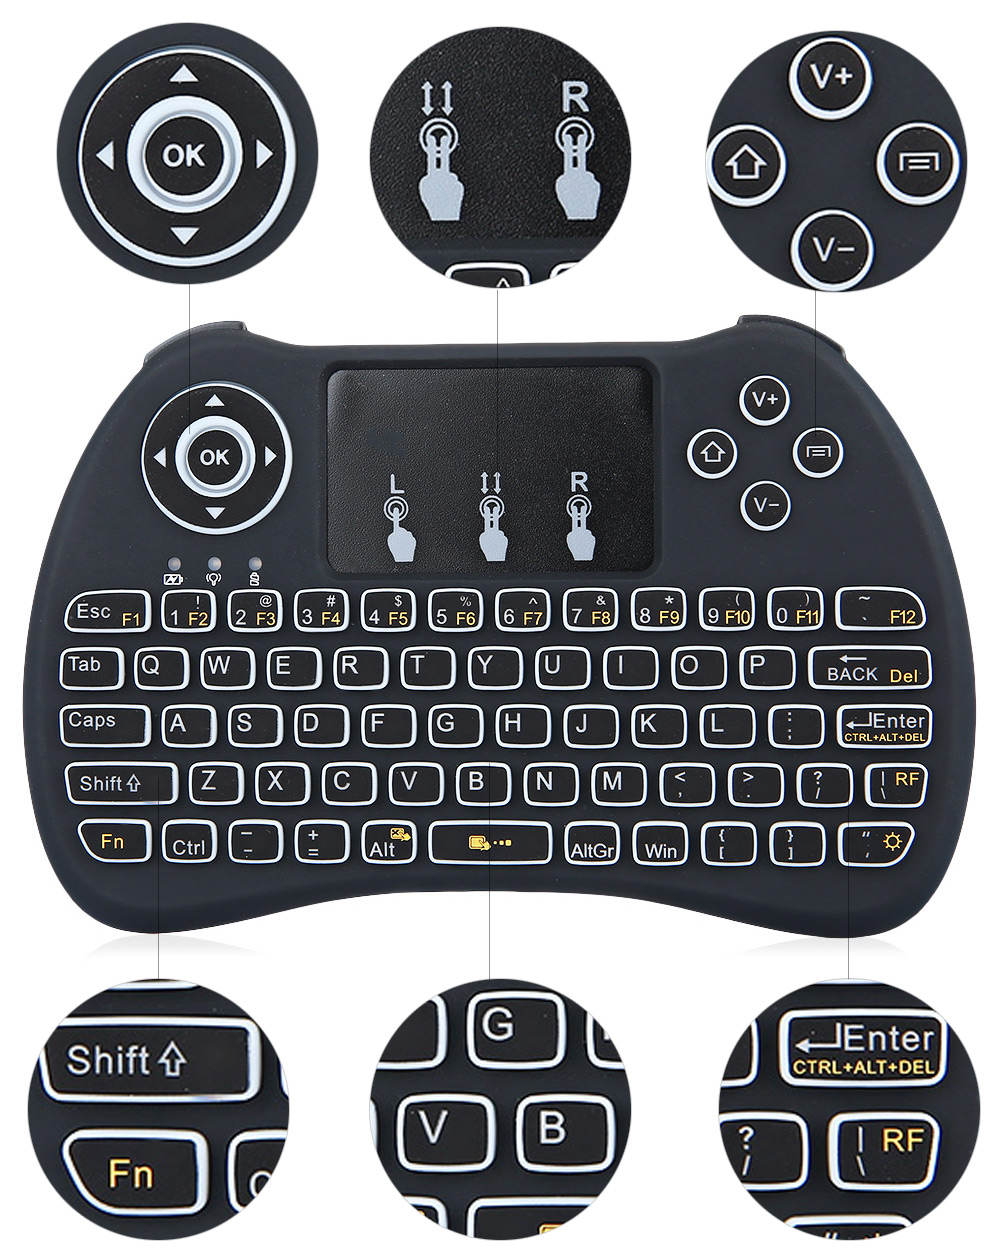 H9 Mini Hand-held Wireless QWERTY Keyboard Touchpad with Backlight